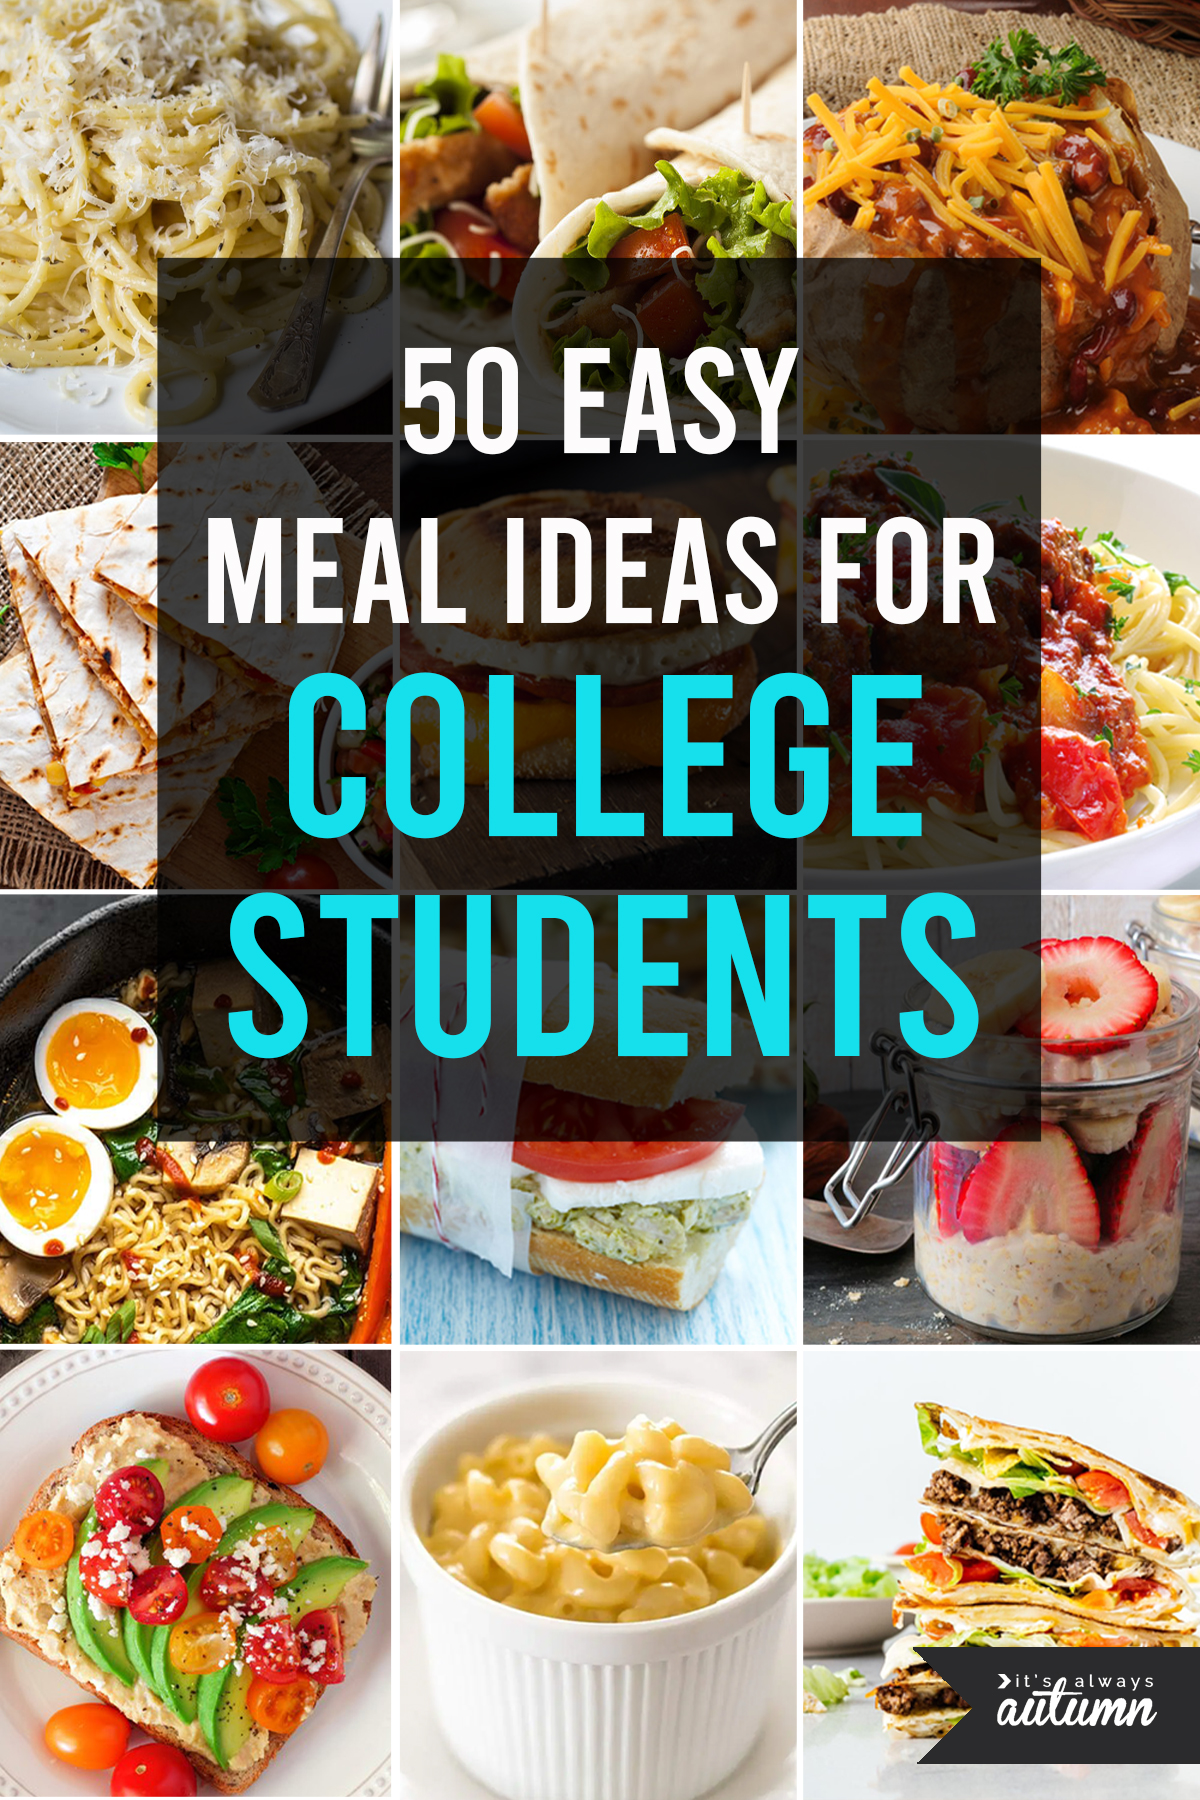 collage of food photos; text: 50 easy meal ideas for college students